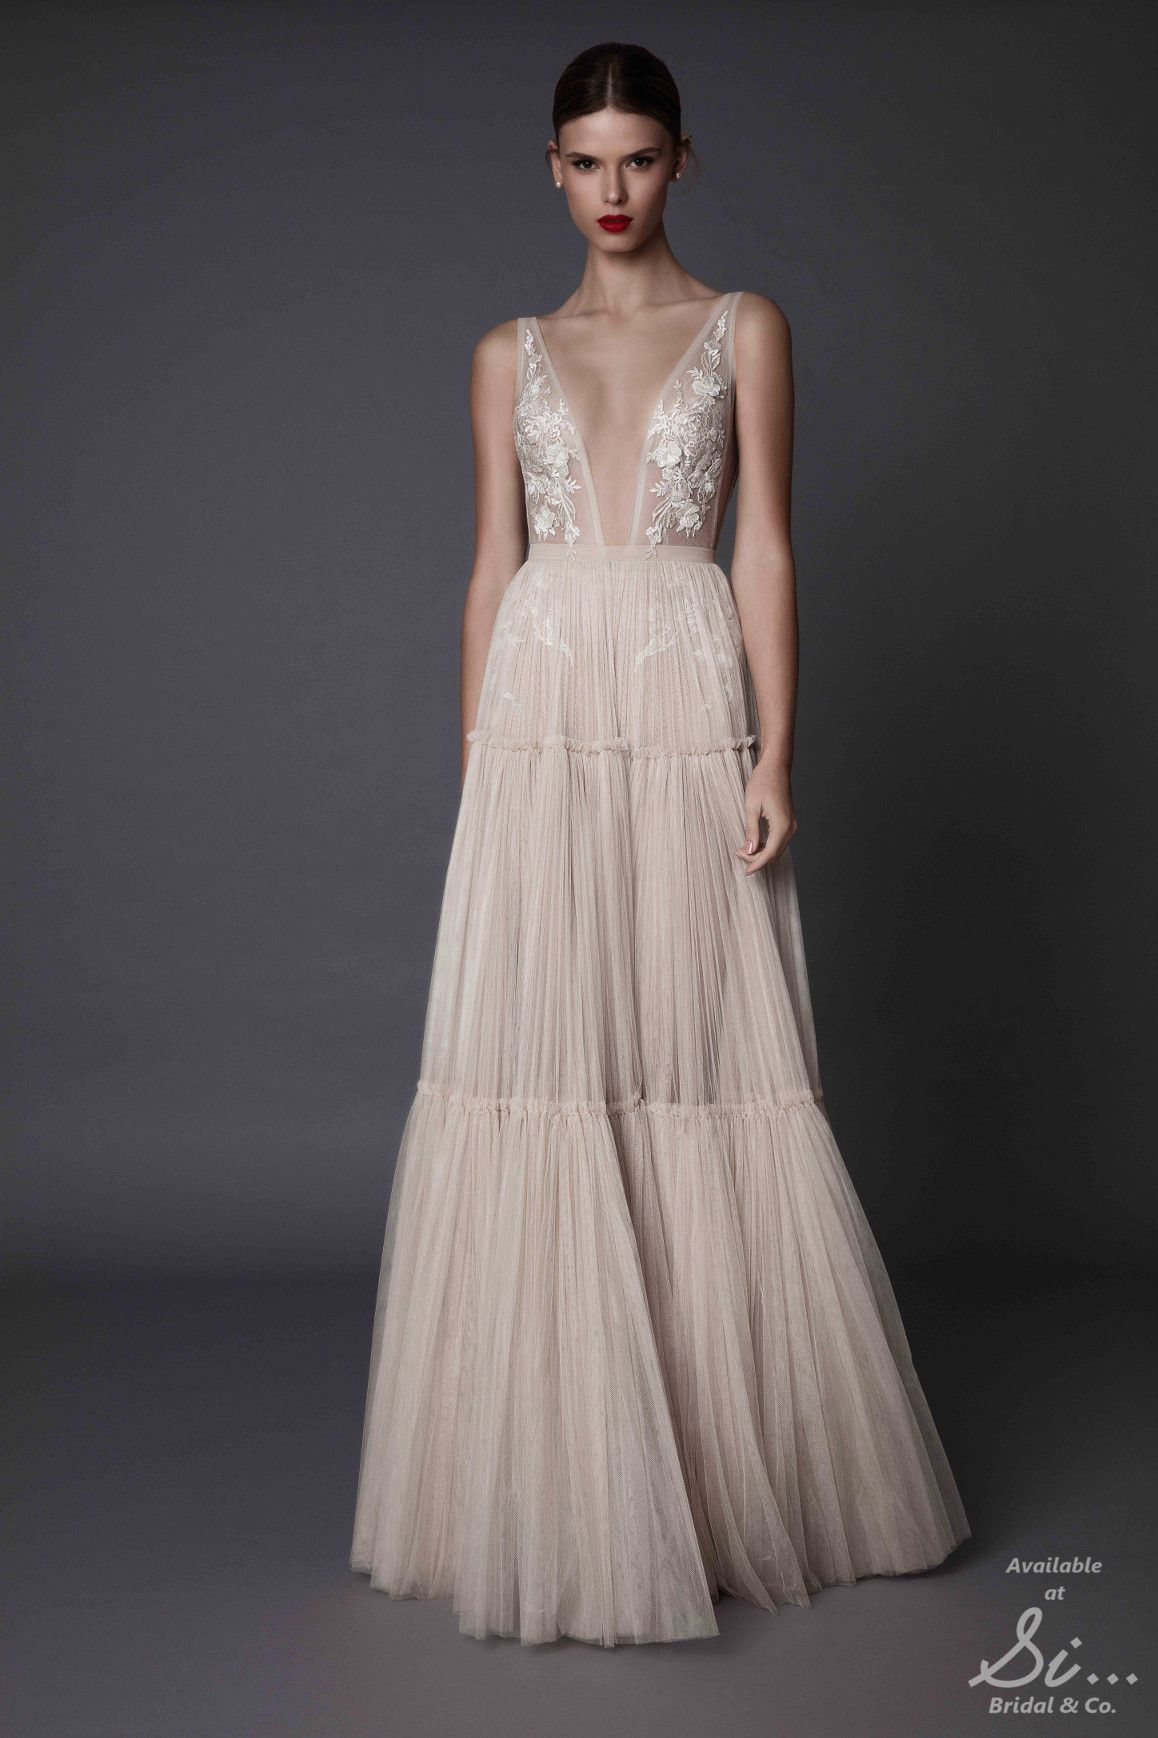 name brand wedding dresses Annabel Muse by BERTA Brand new luxury diffusion line by the biggest name in Colored Wedding DressesWeeding